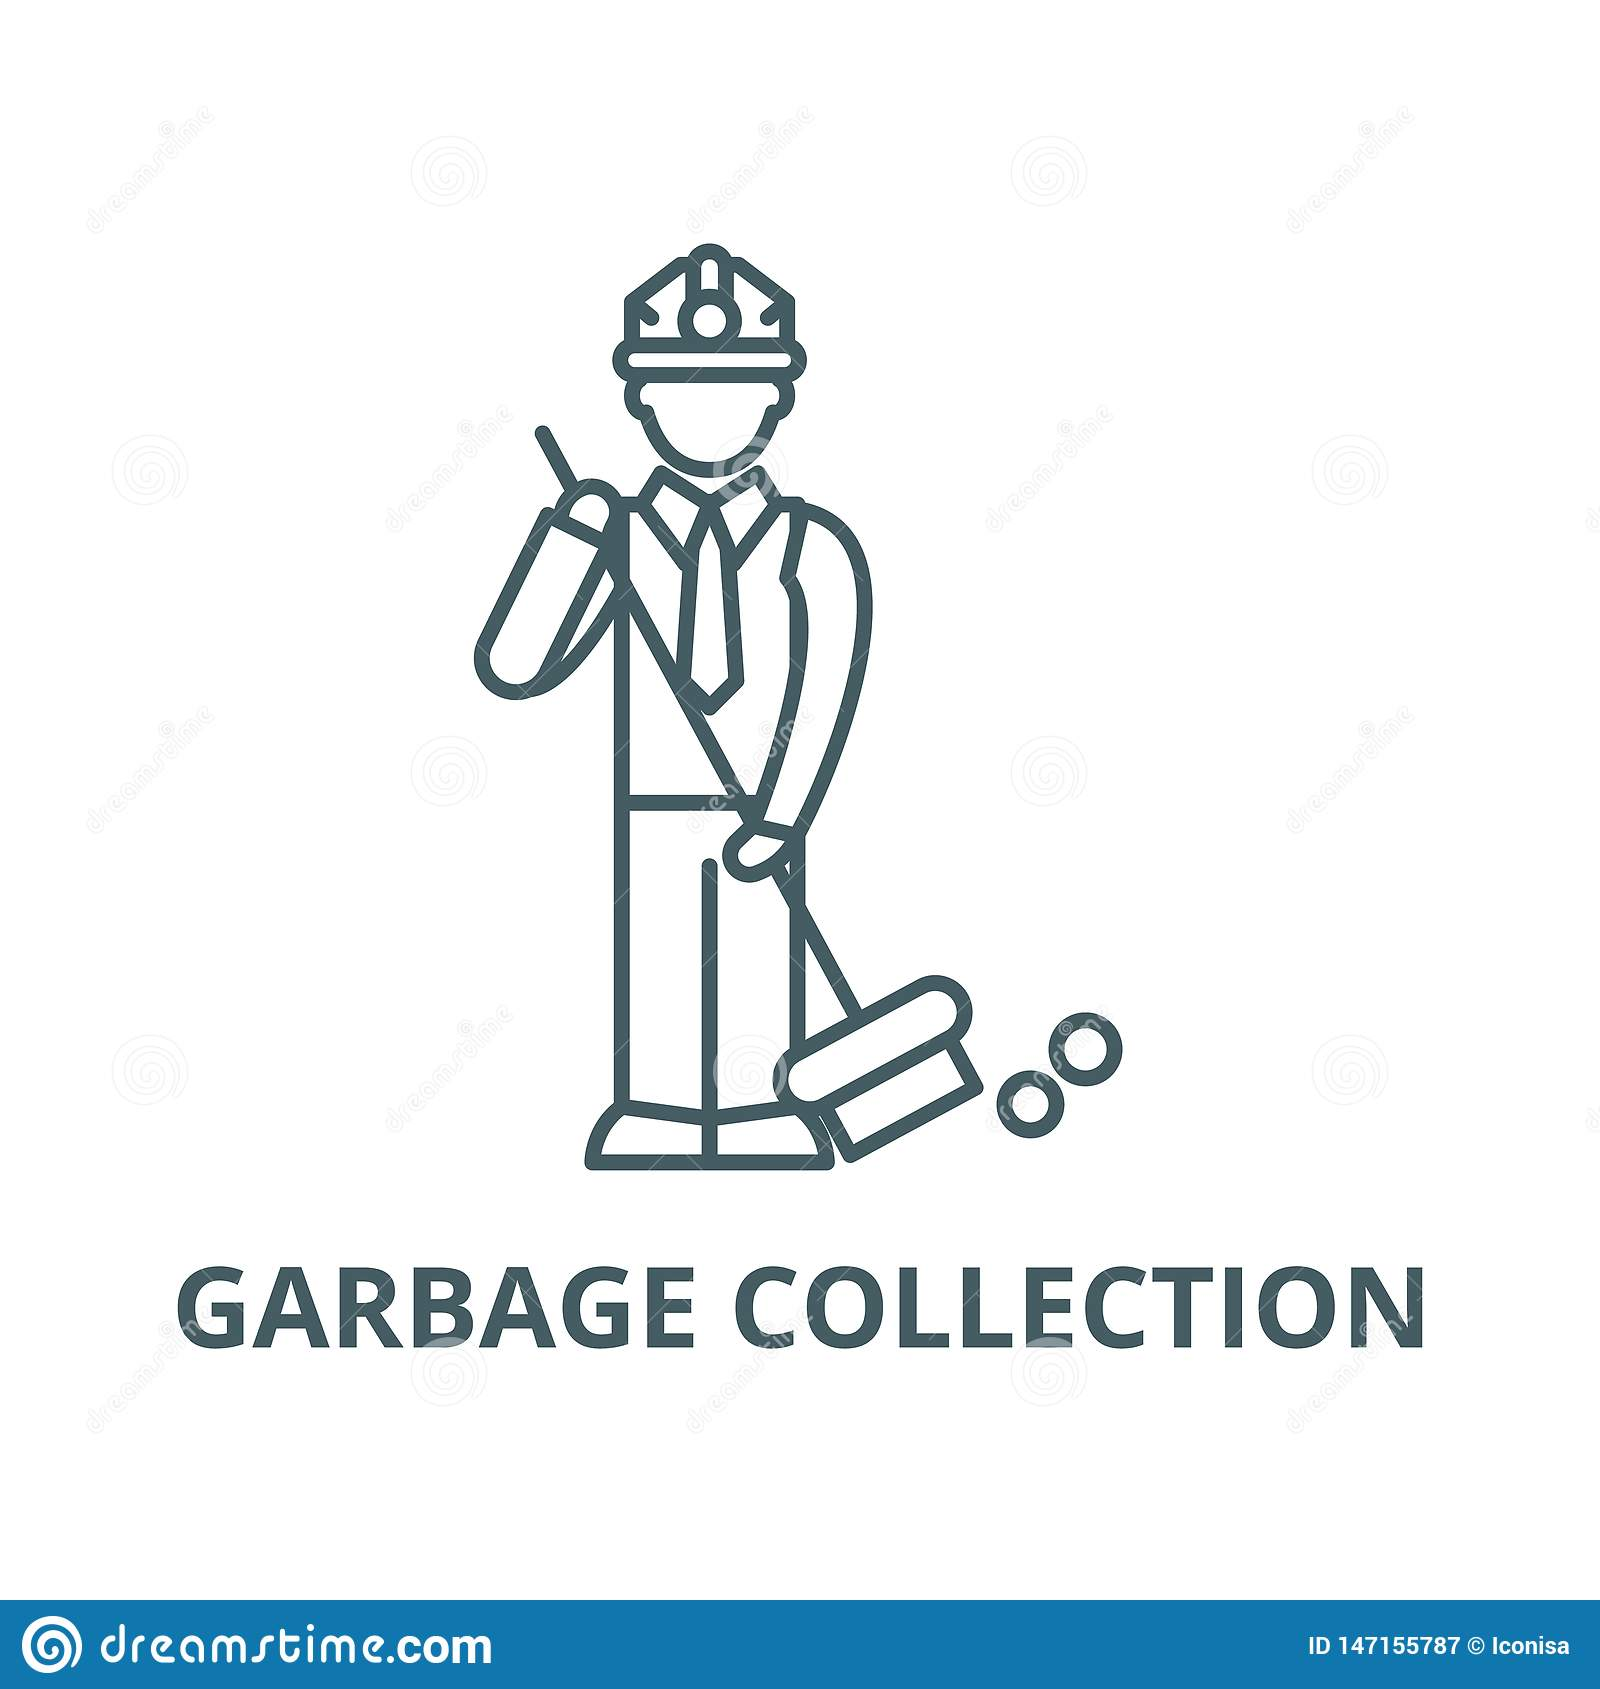 Garbage collection vector line icon, linear concept, outline sign, symbol